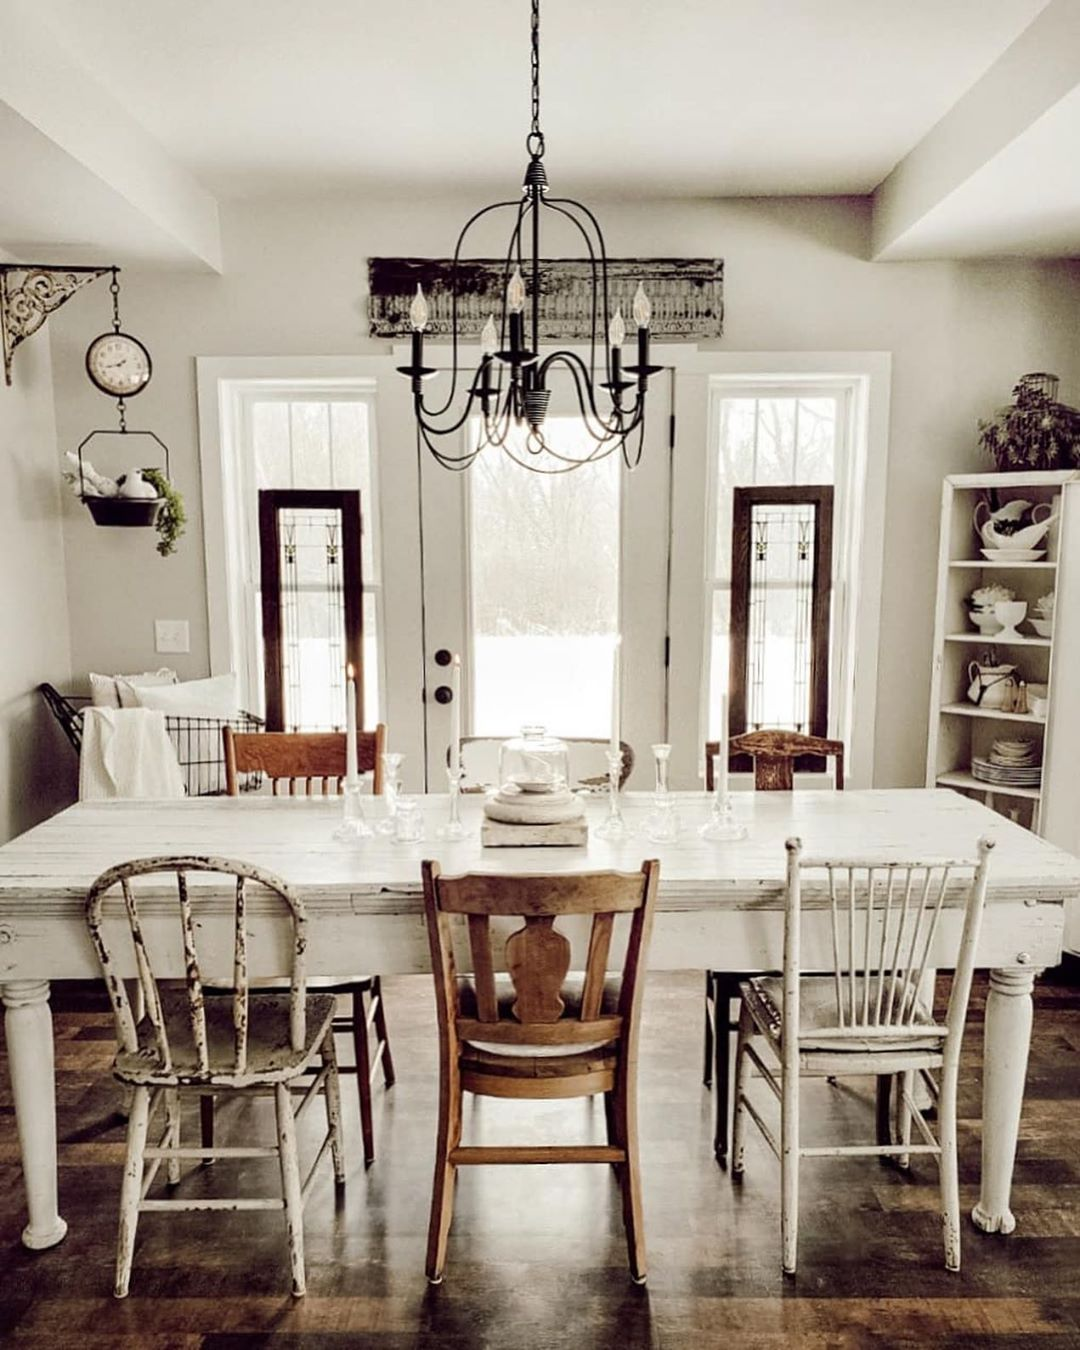 Farmhousefor8 We Love The Look Of These Mismatched Chairs In This Farmhouse Fining Room Shabby Chic Kitchen Table Rustic Dining Room Shabby Chic Kitchen